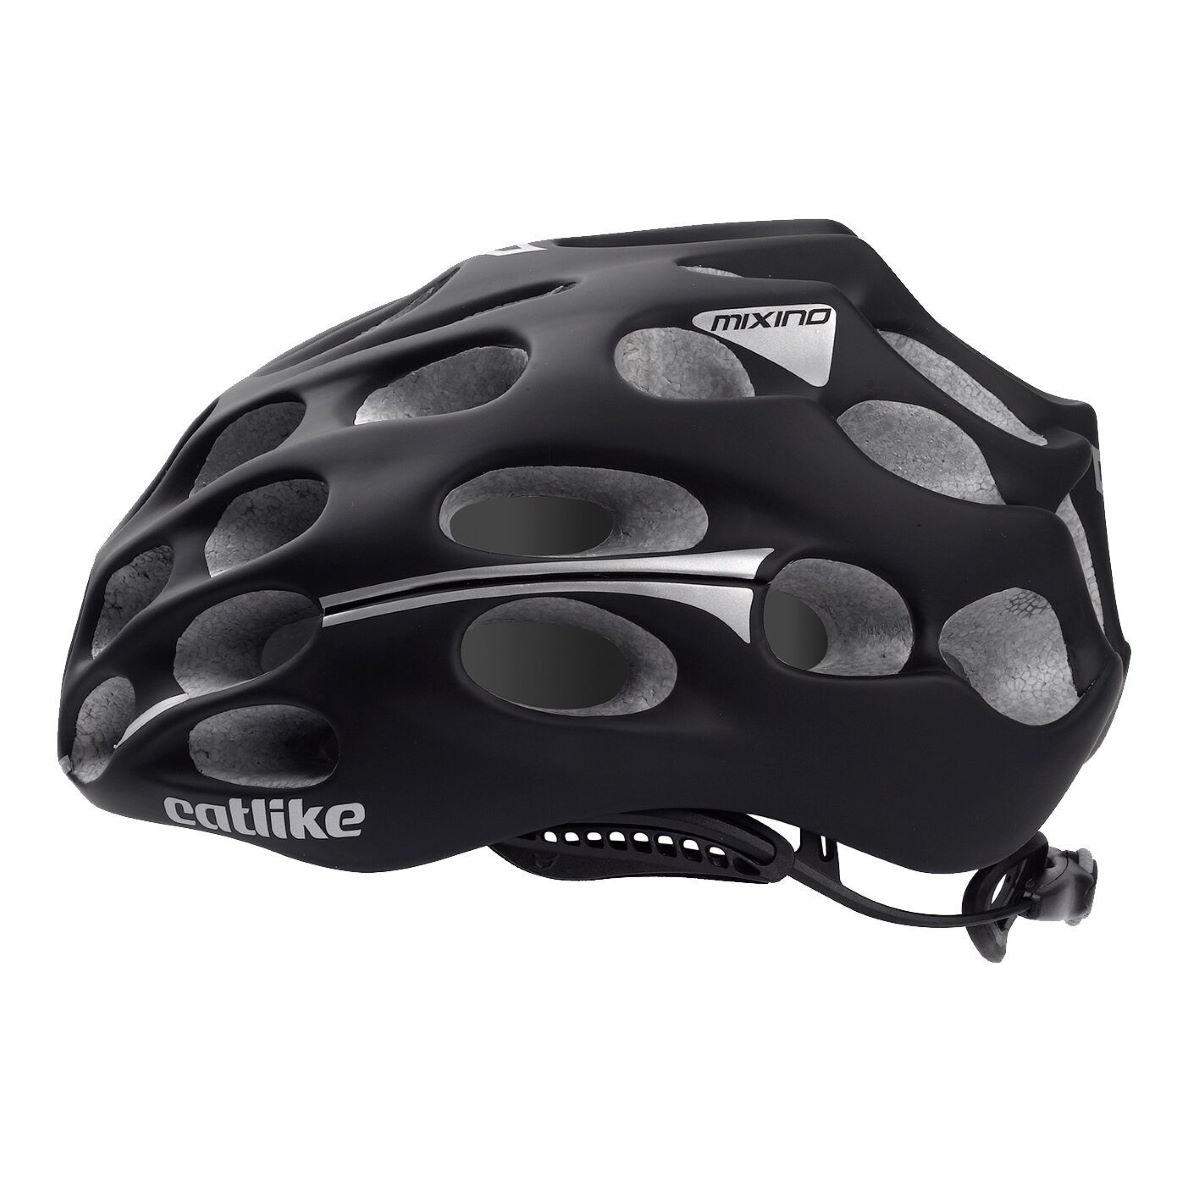 Casque de route Catlike Mixino - S Black Matt Casques de route